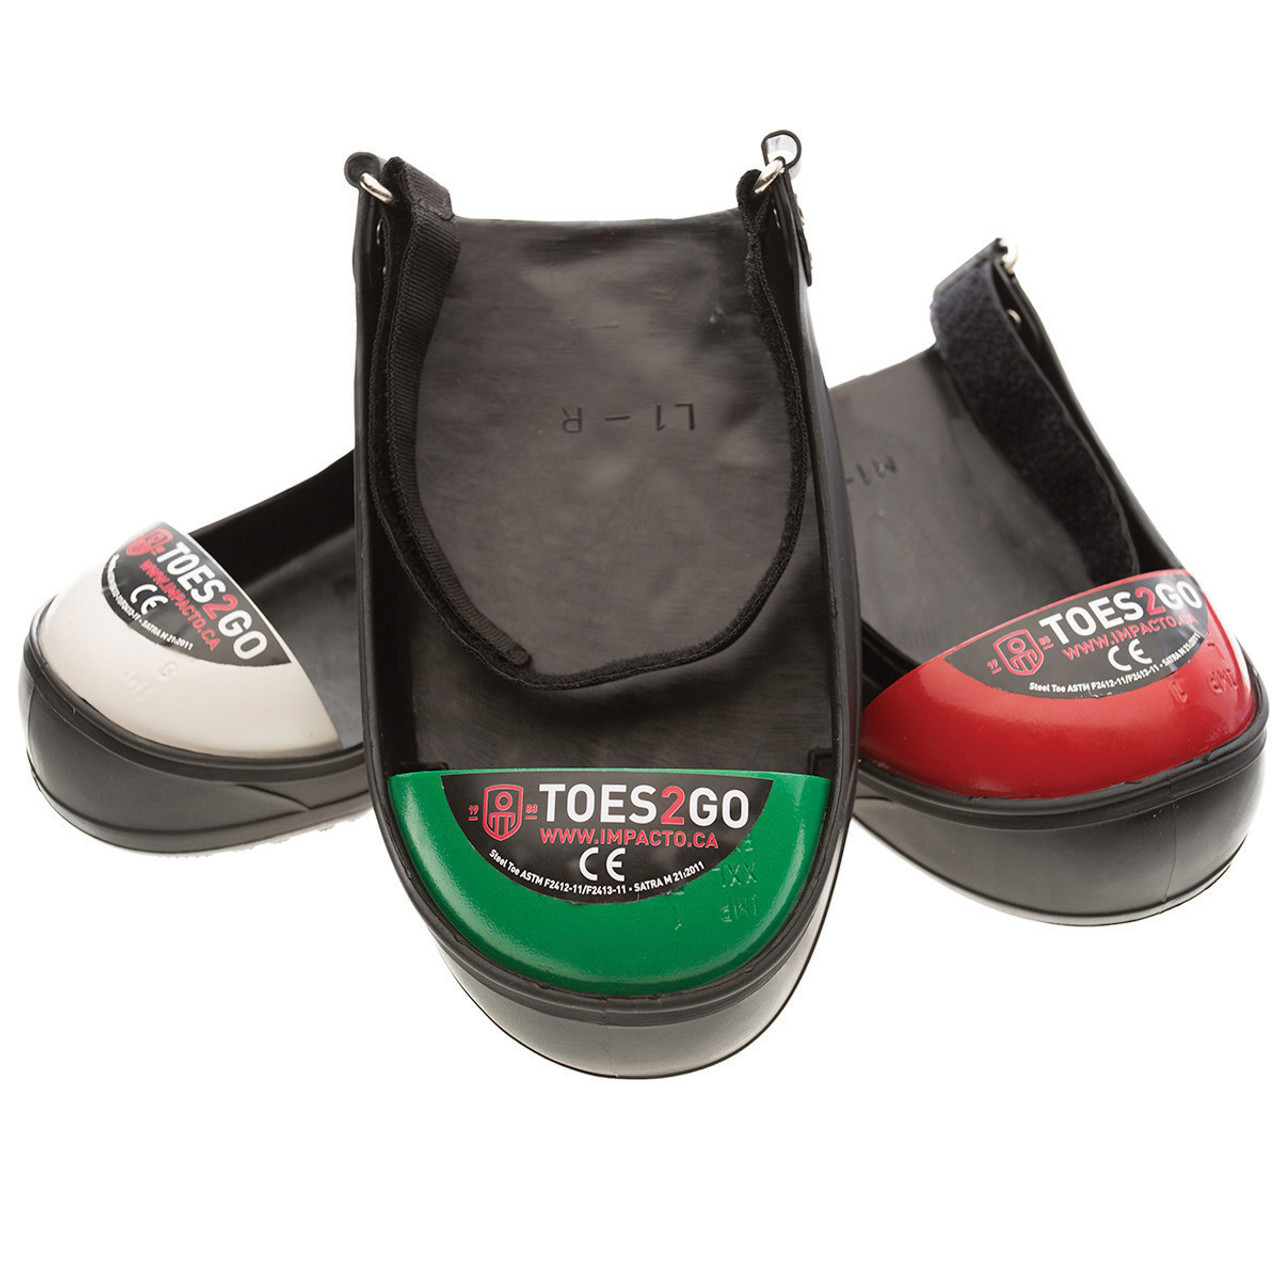 Size XL Impacto Impactoe Safety Steel Toe Cover Brand New